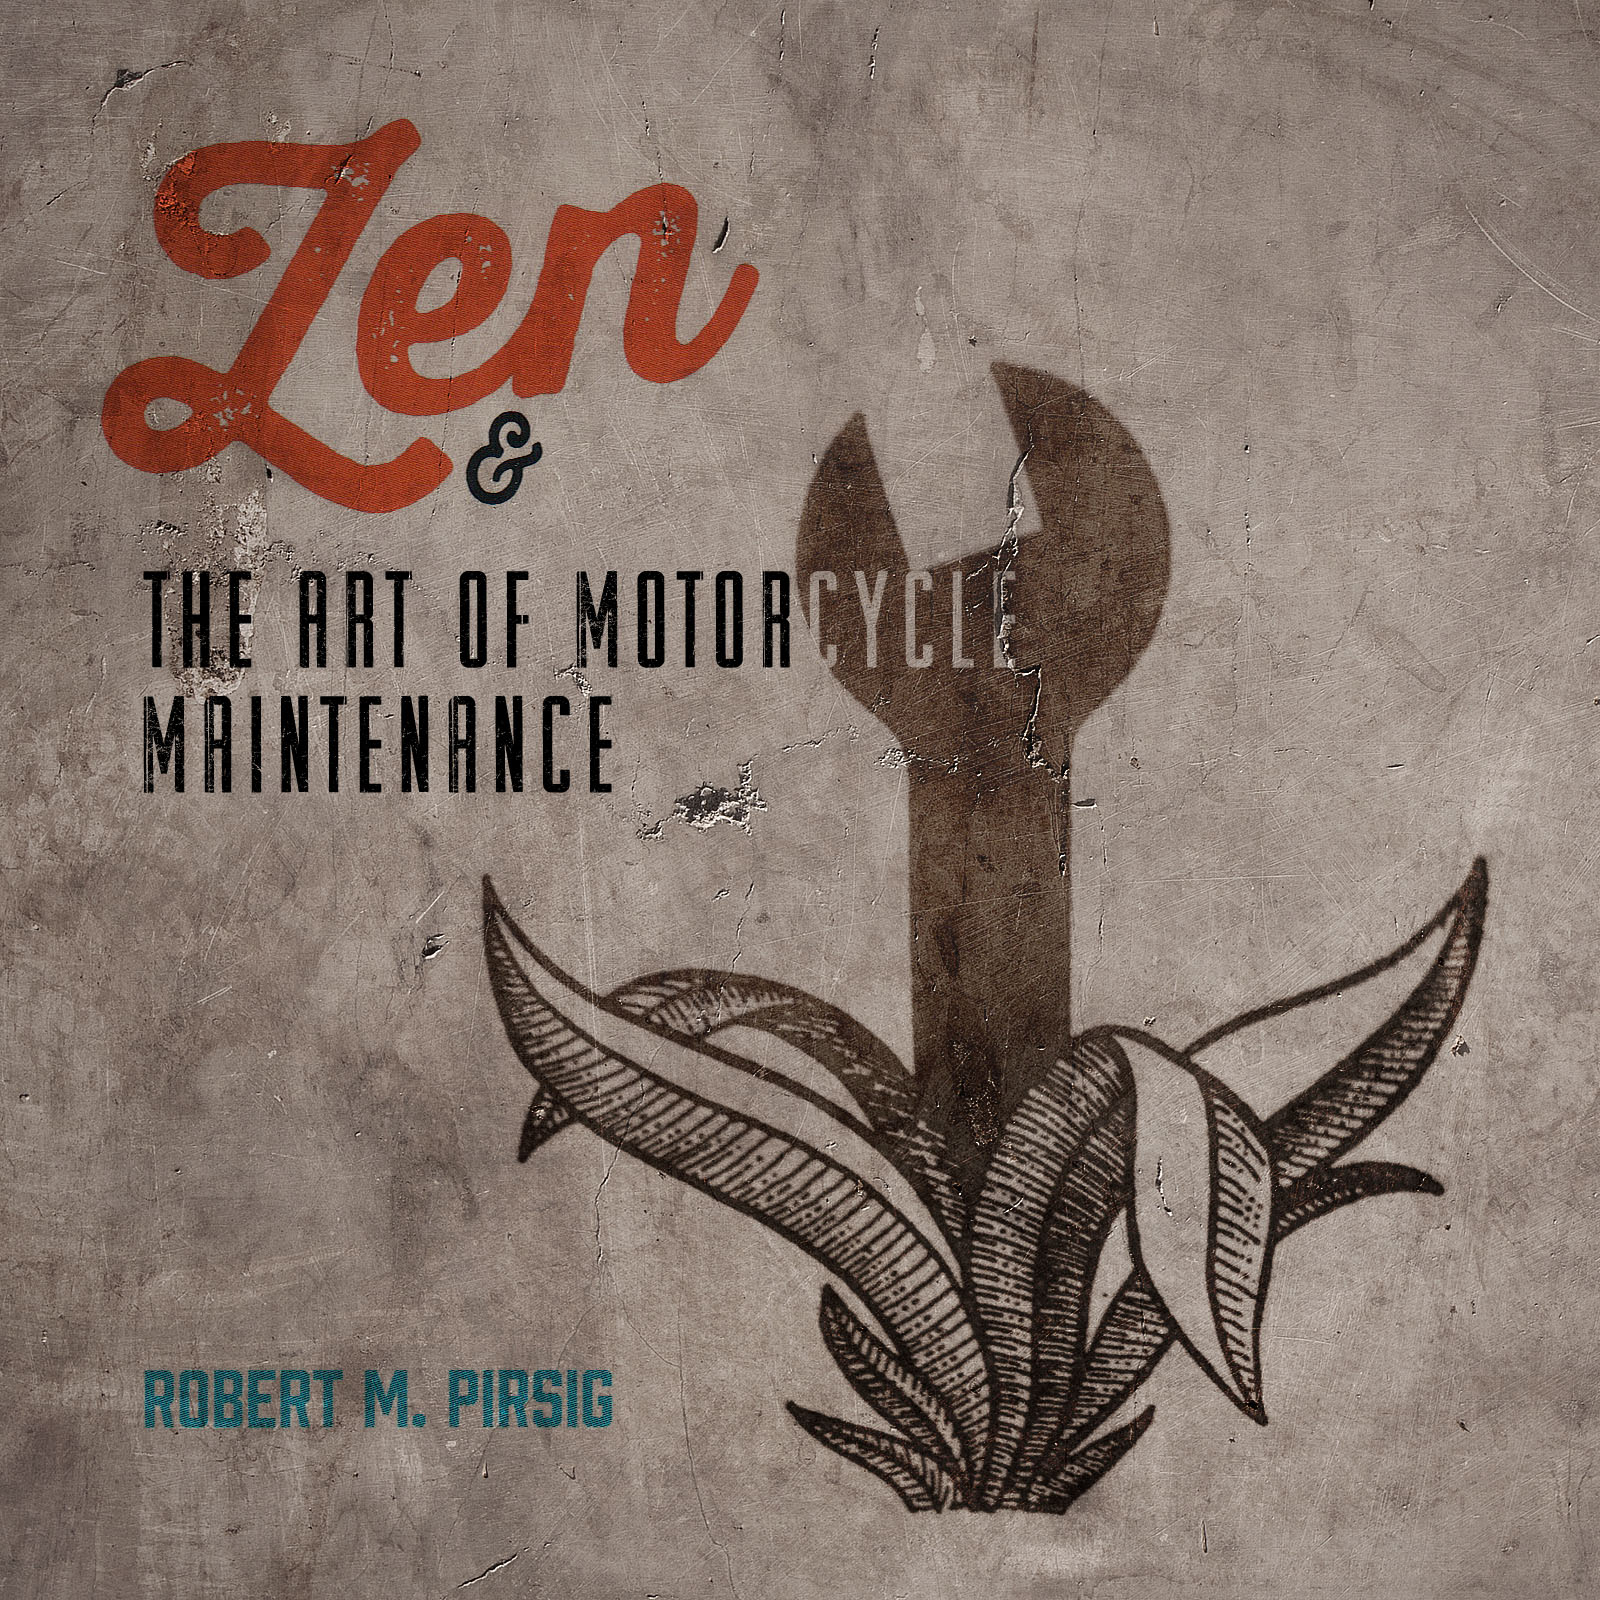 zen-and-the-art-of-motorcycle-maintenance.jpg?fit=1600%2C1600&ssl=1